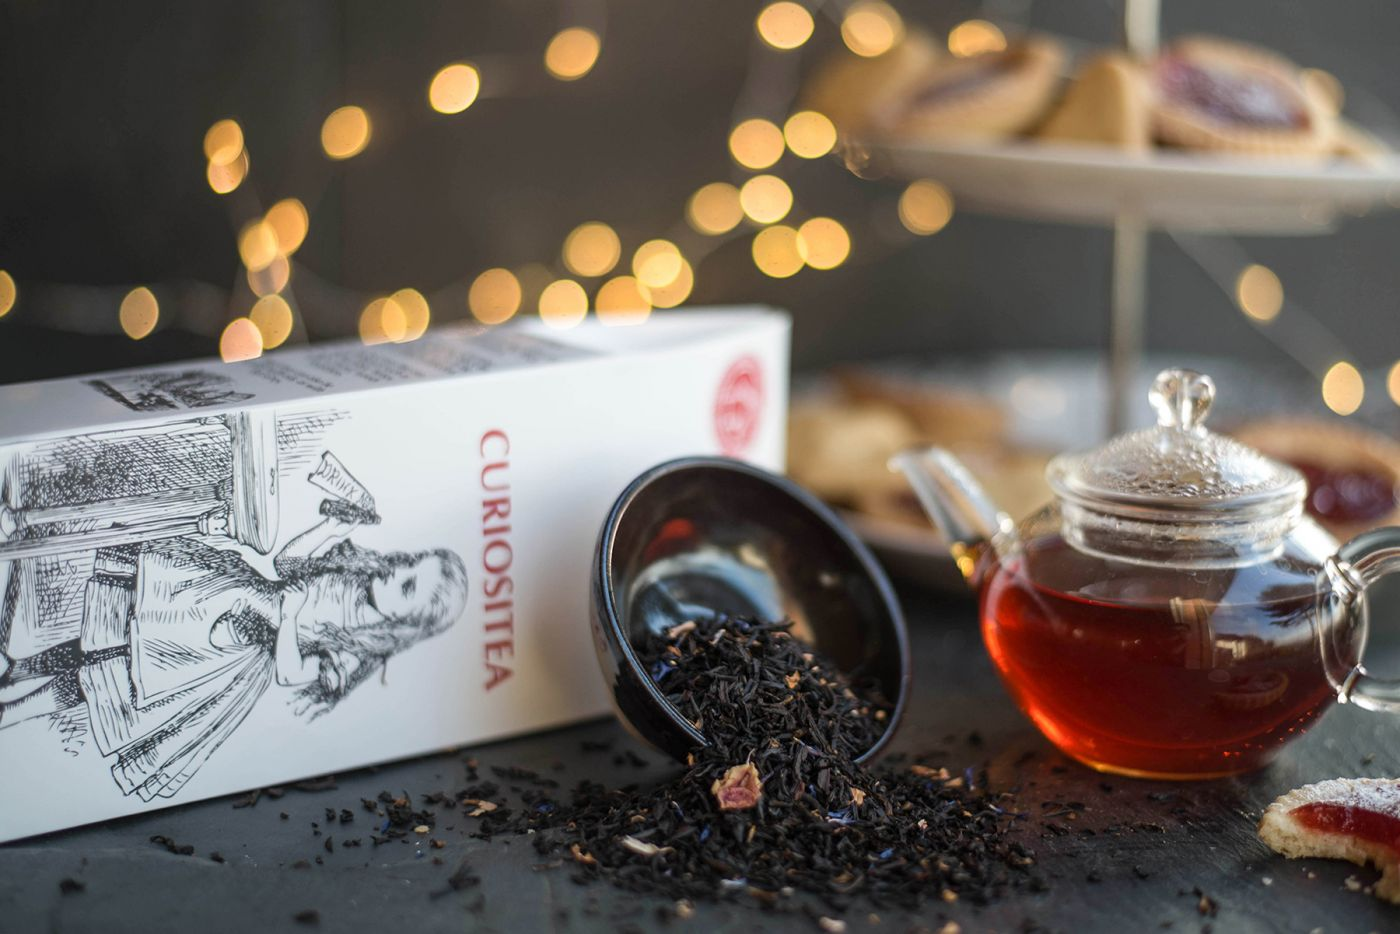 Curiositea Flavoured Black Tea